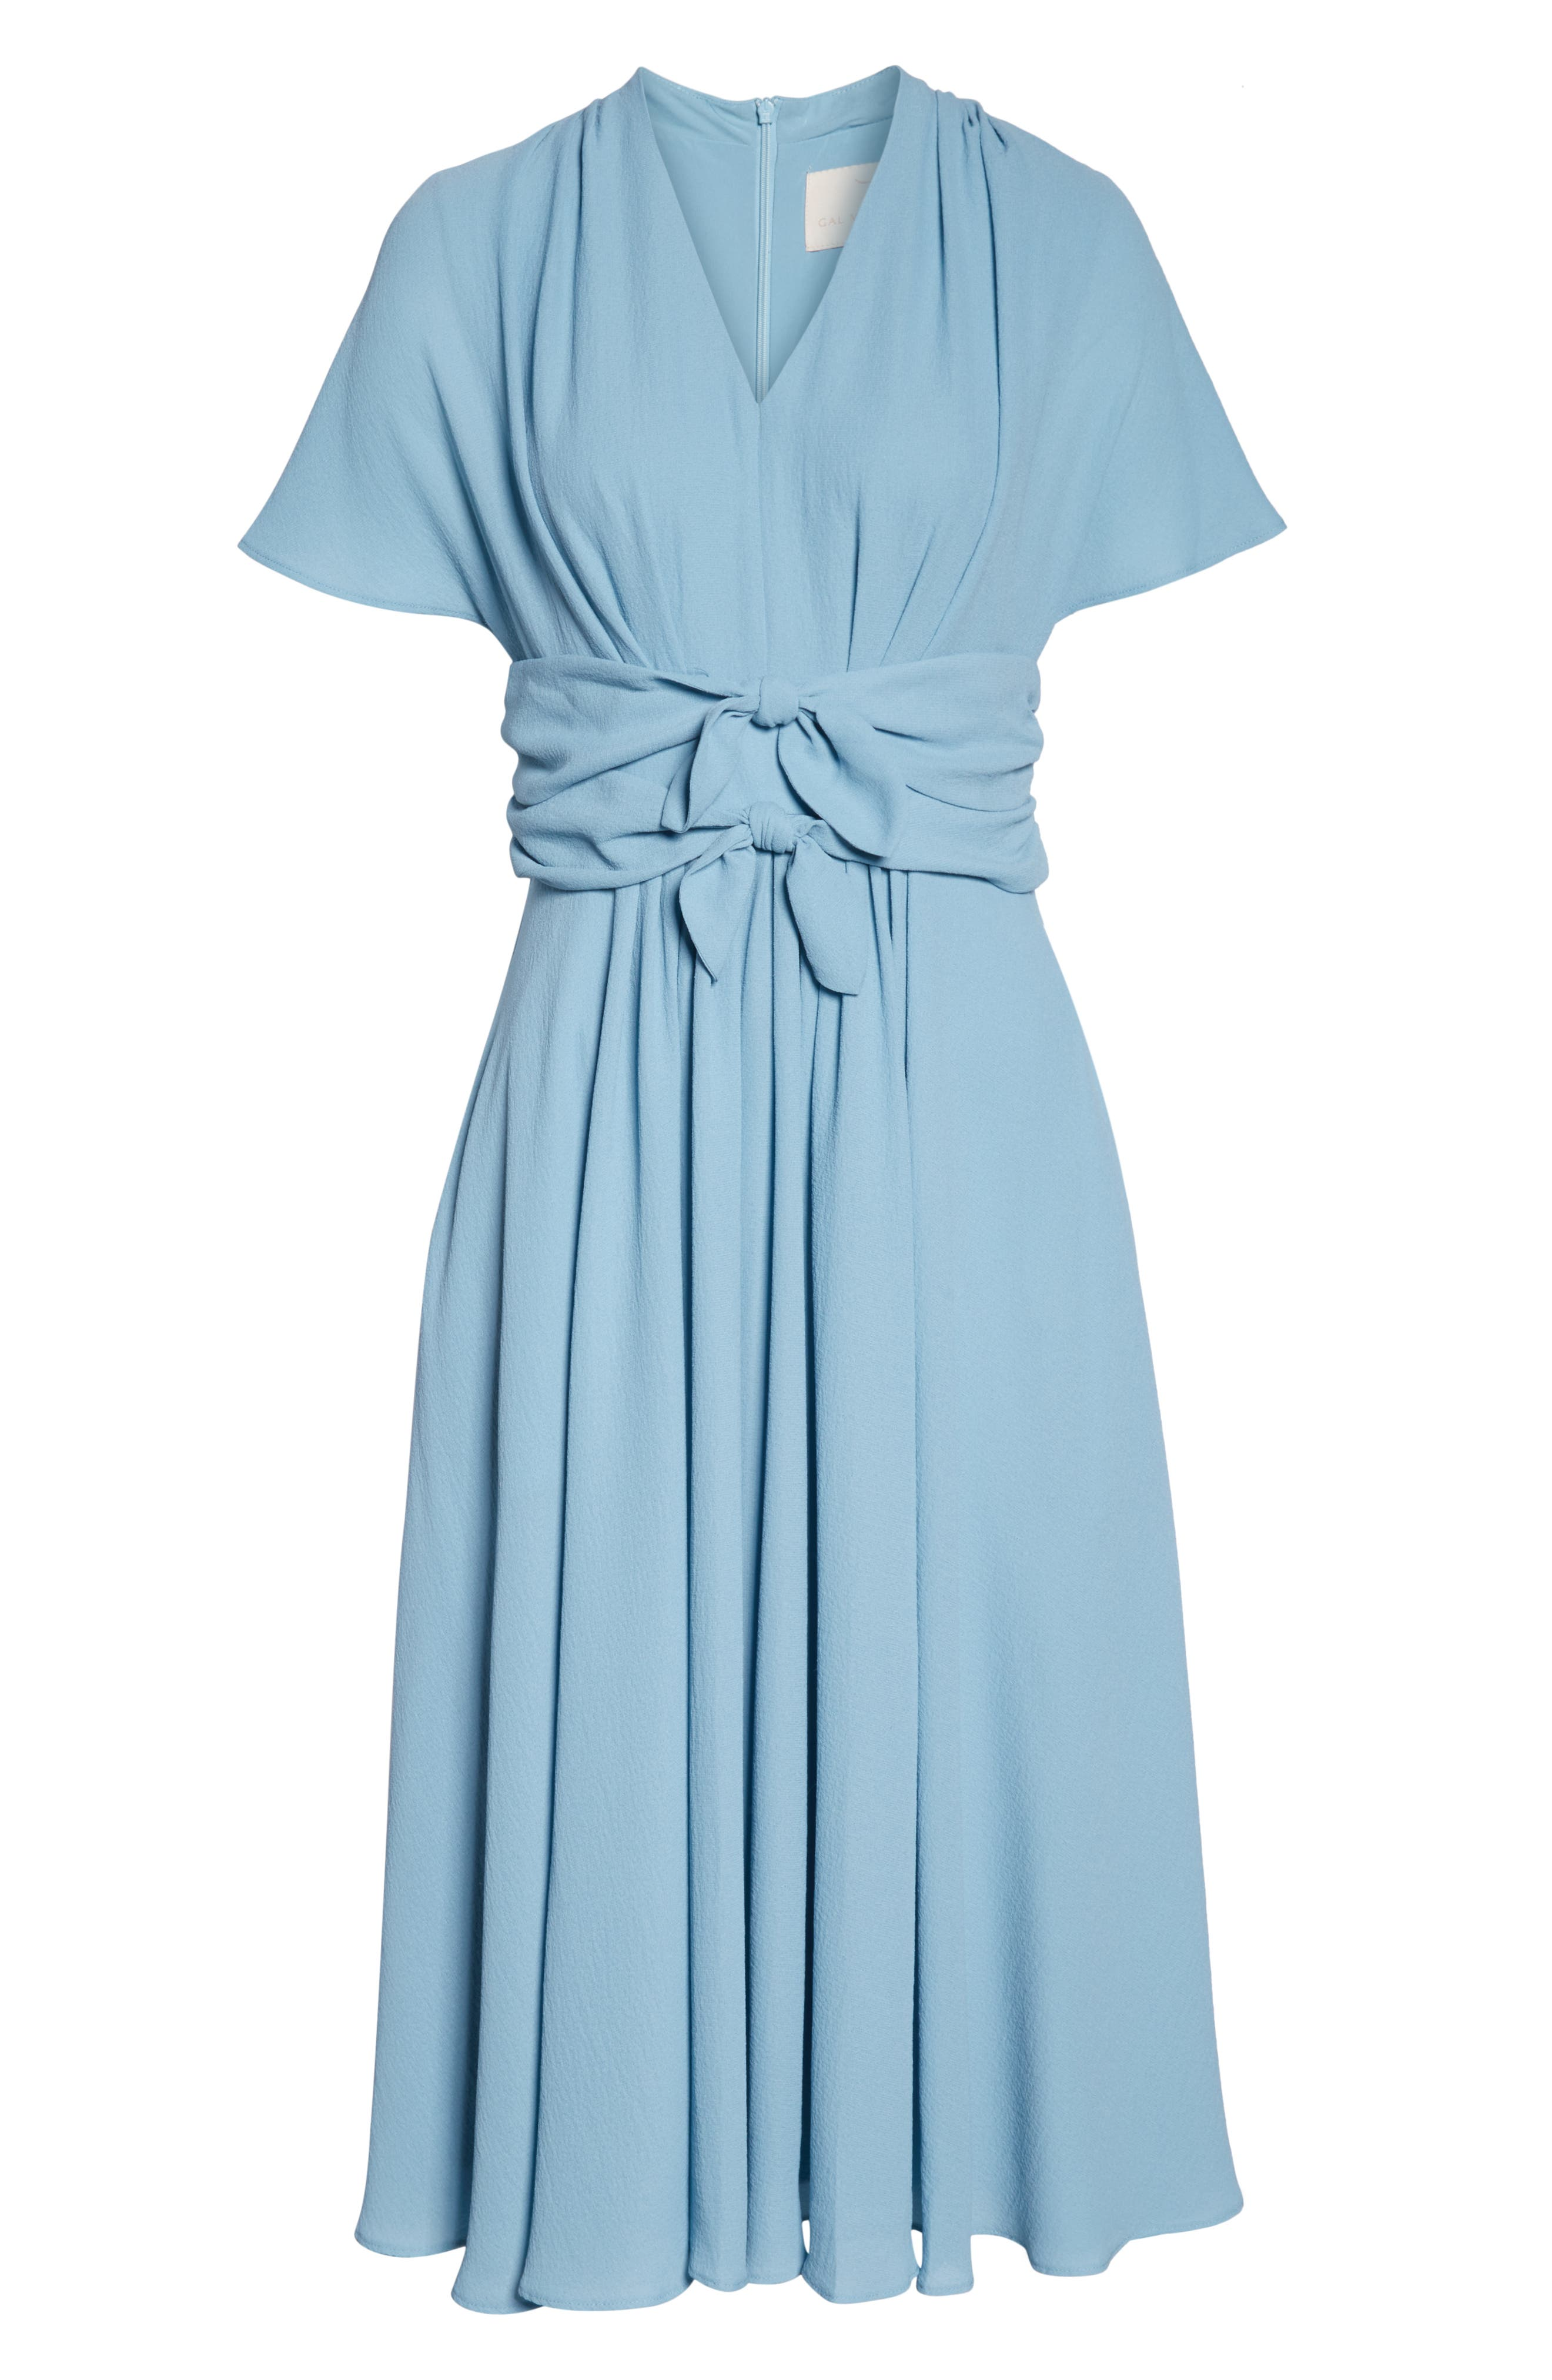 GAL MEETS GLAM COLLECTION,                             Jane Tie Waist Midi Dress,                             Alternate thumbnail 7, color,                             STEEL BLUE